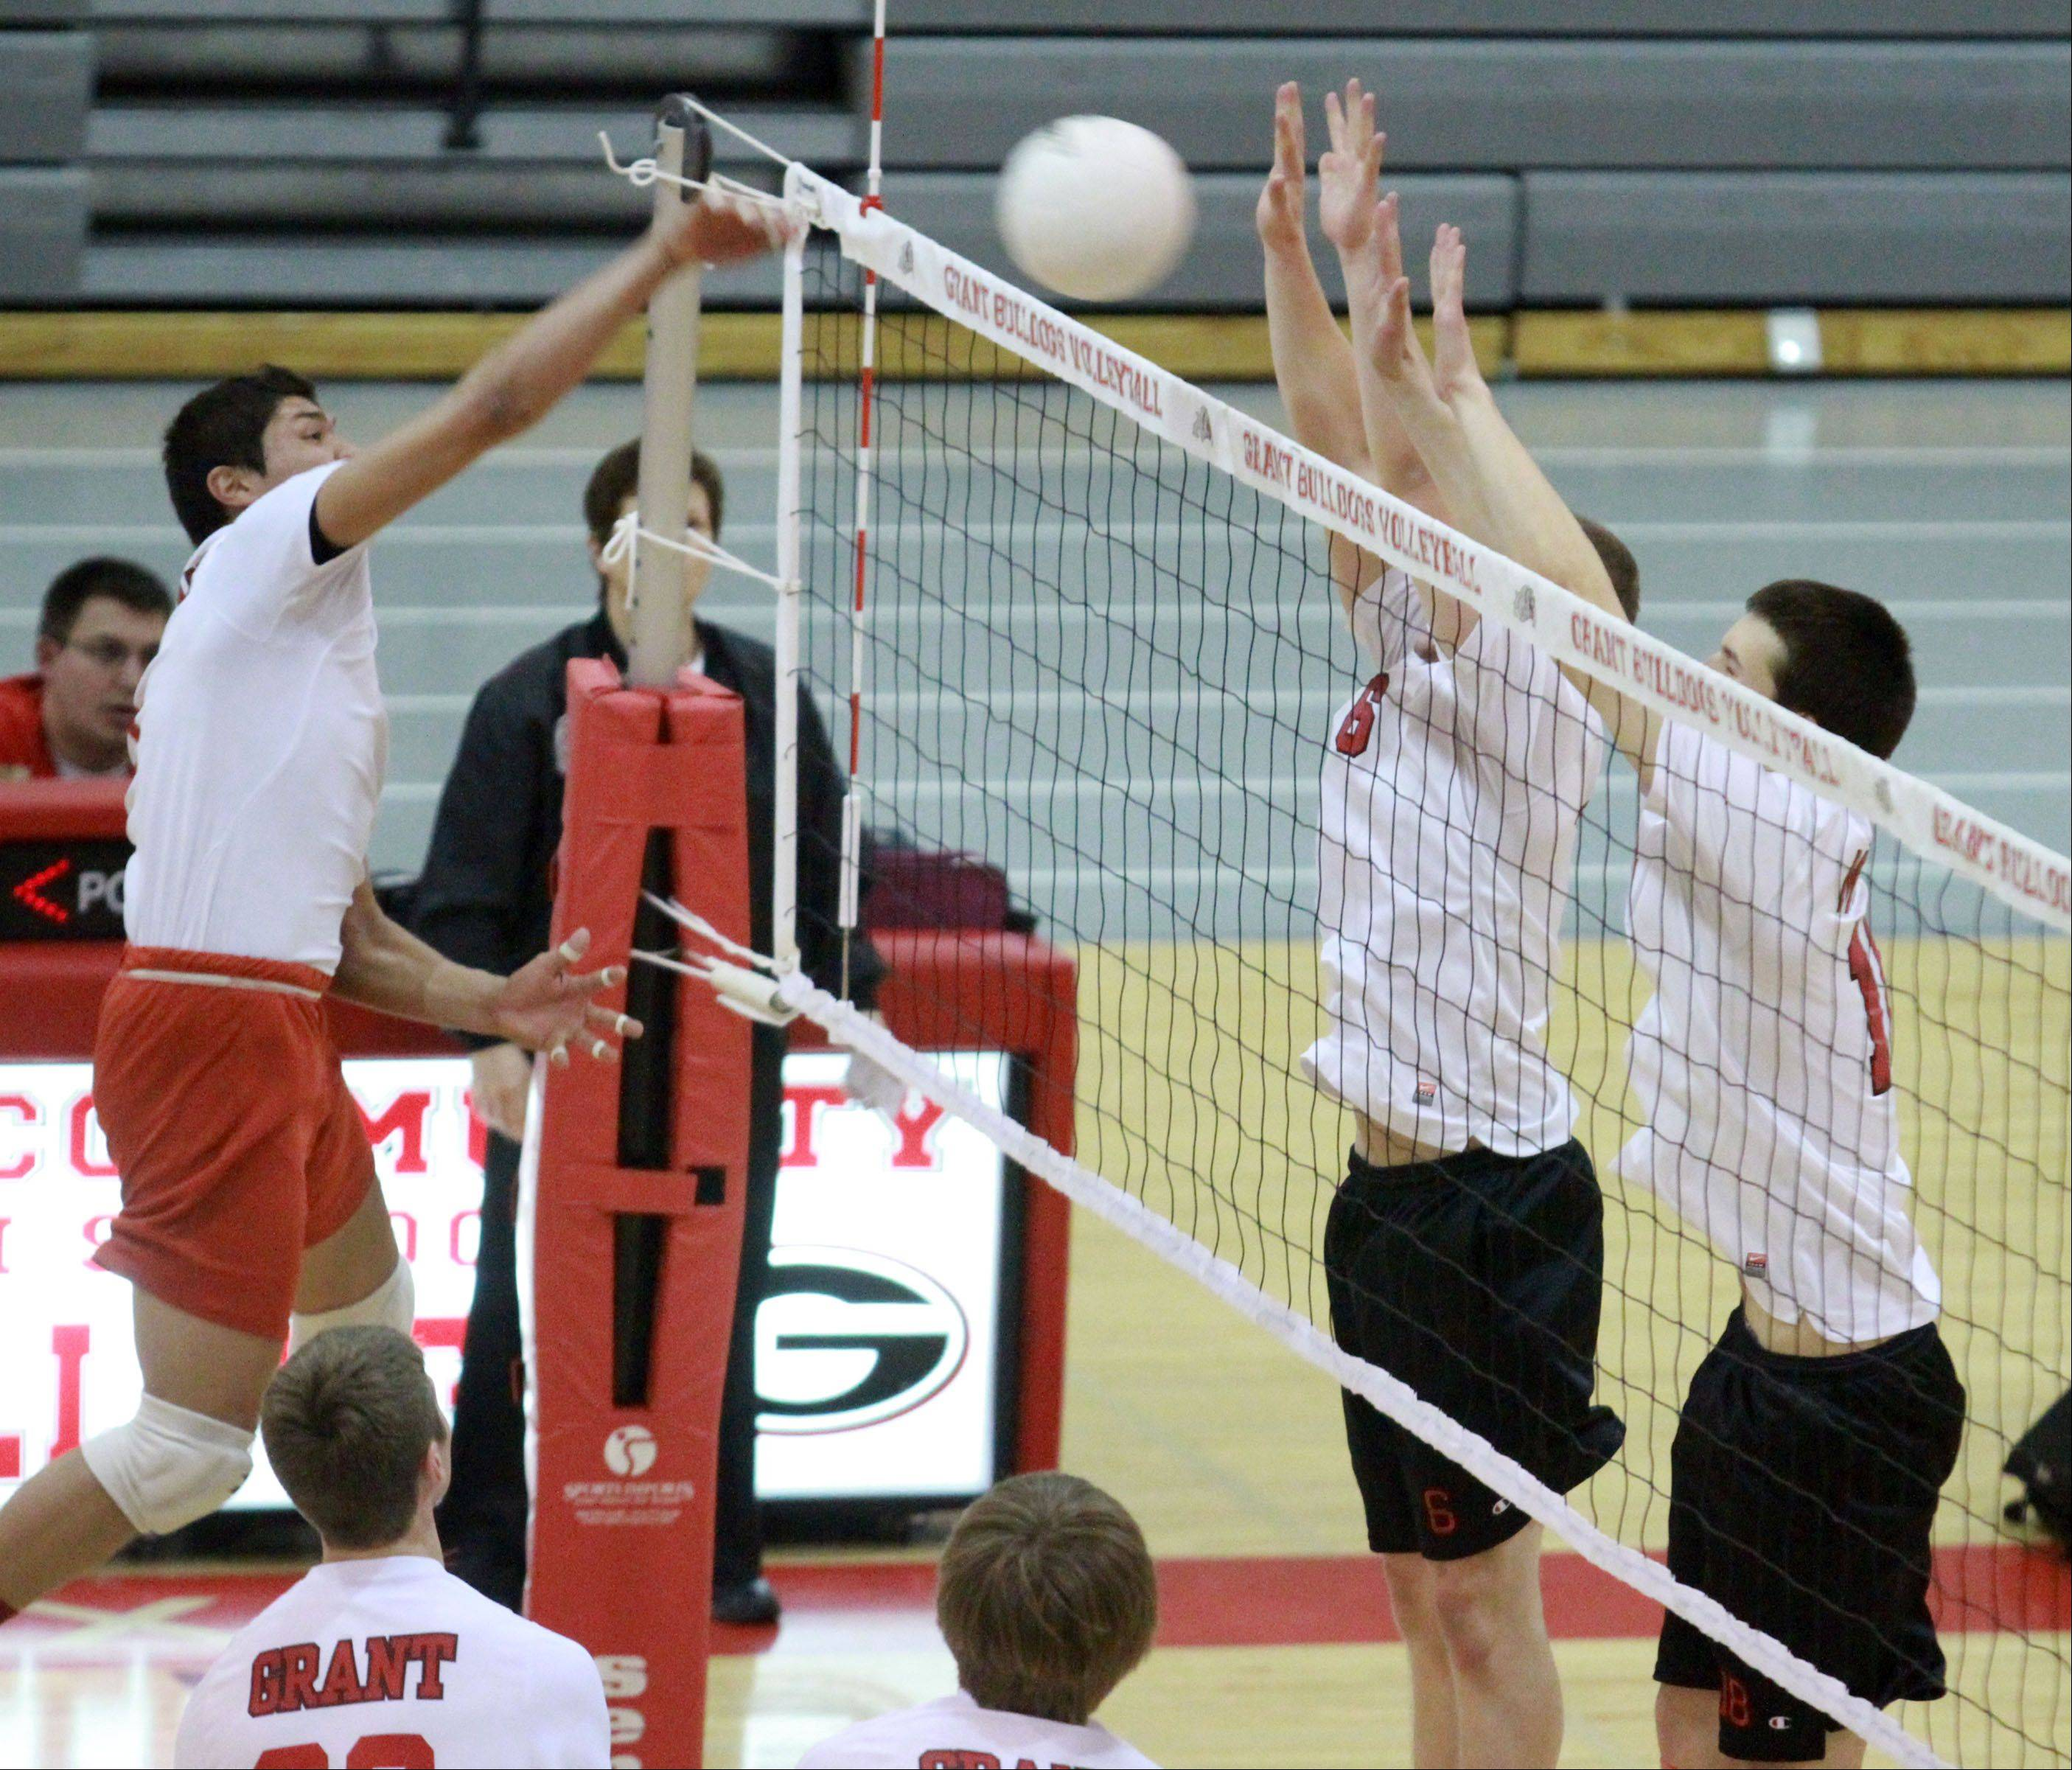 Grant's Ron Torres goes for a kill as Mundelein's Christian Brubaker, left, and Joey Tylka set up the block at Grant on Friday.